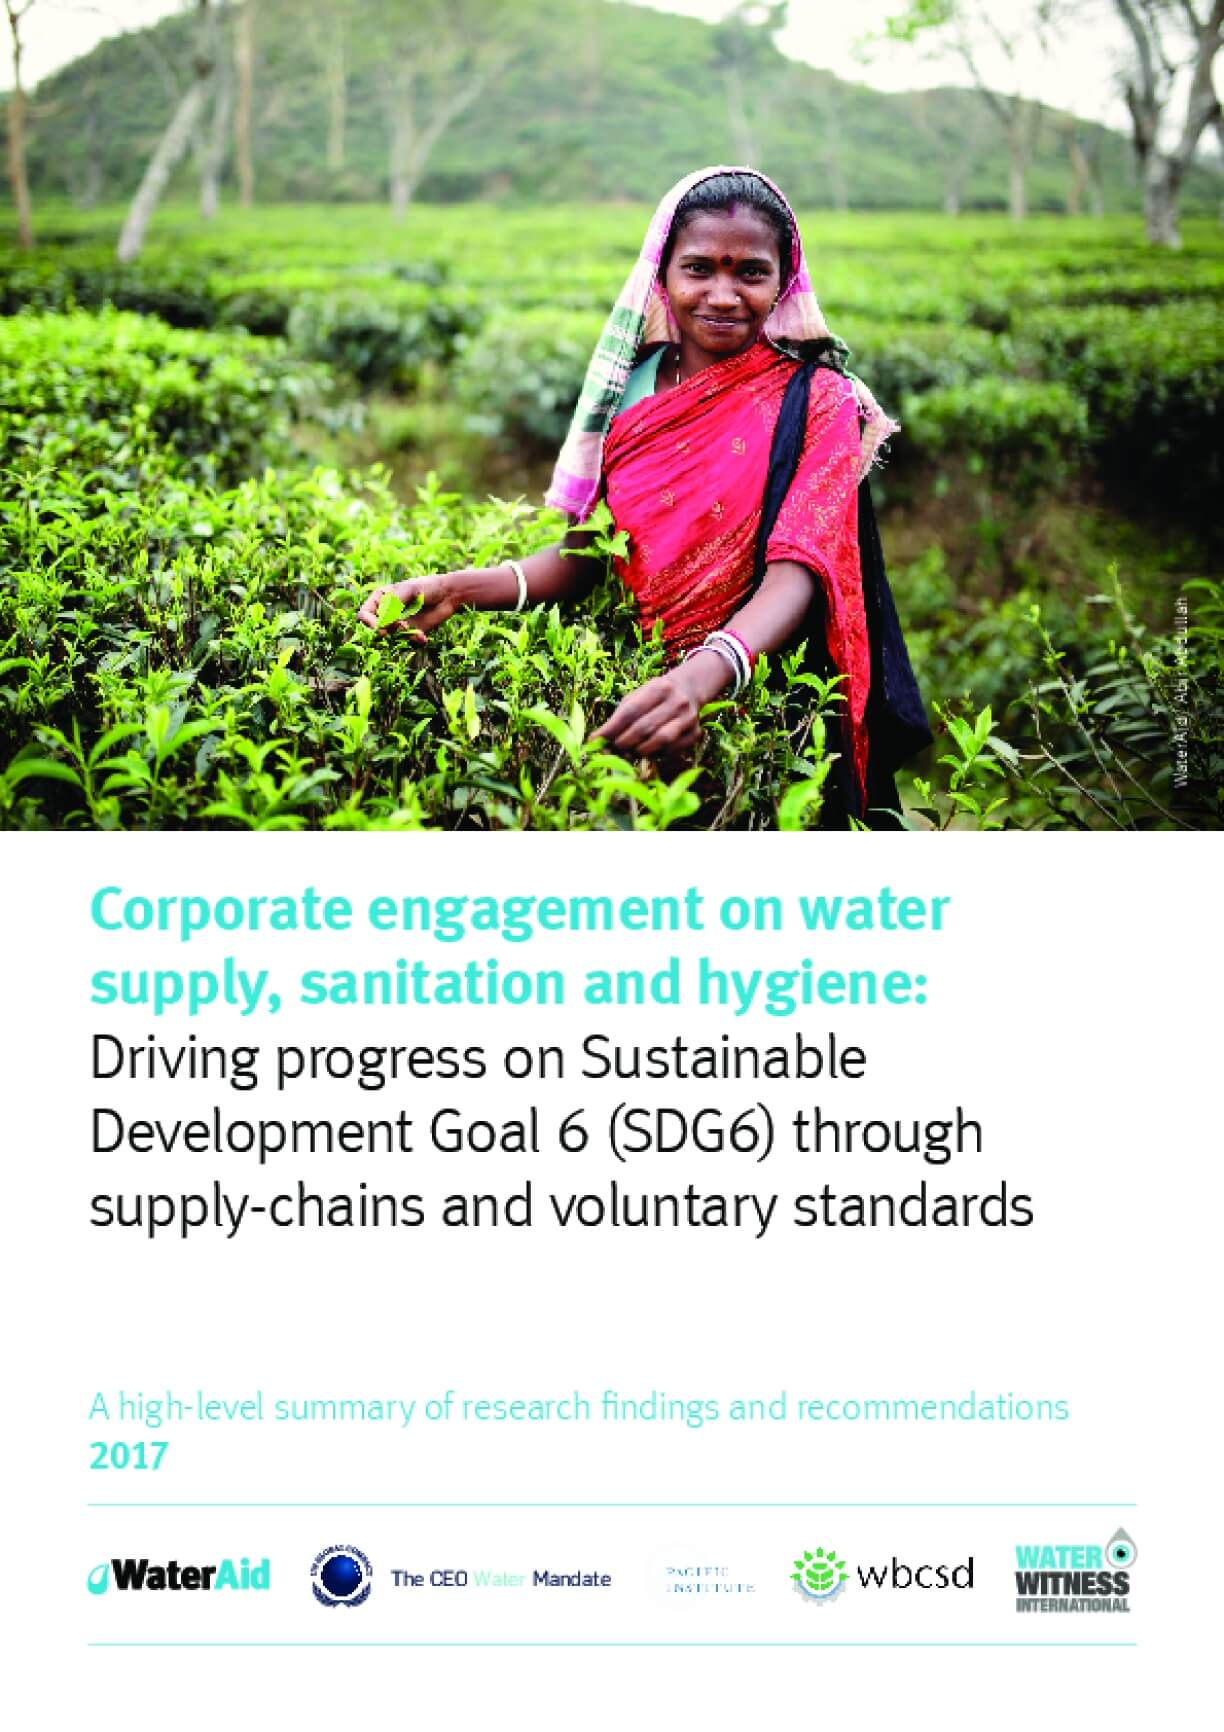 Corporate Engagement on Water Supply, Sanitation and Hygiene: Driving Progress on Sustainable Development Goal 6 (SDG6) Through Supply-chains and Voluntary Standards